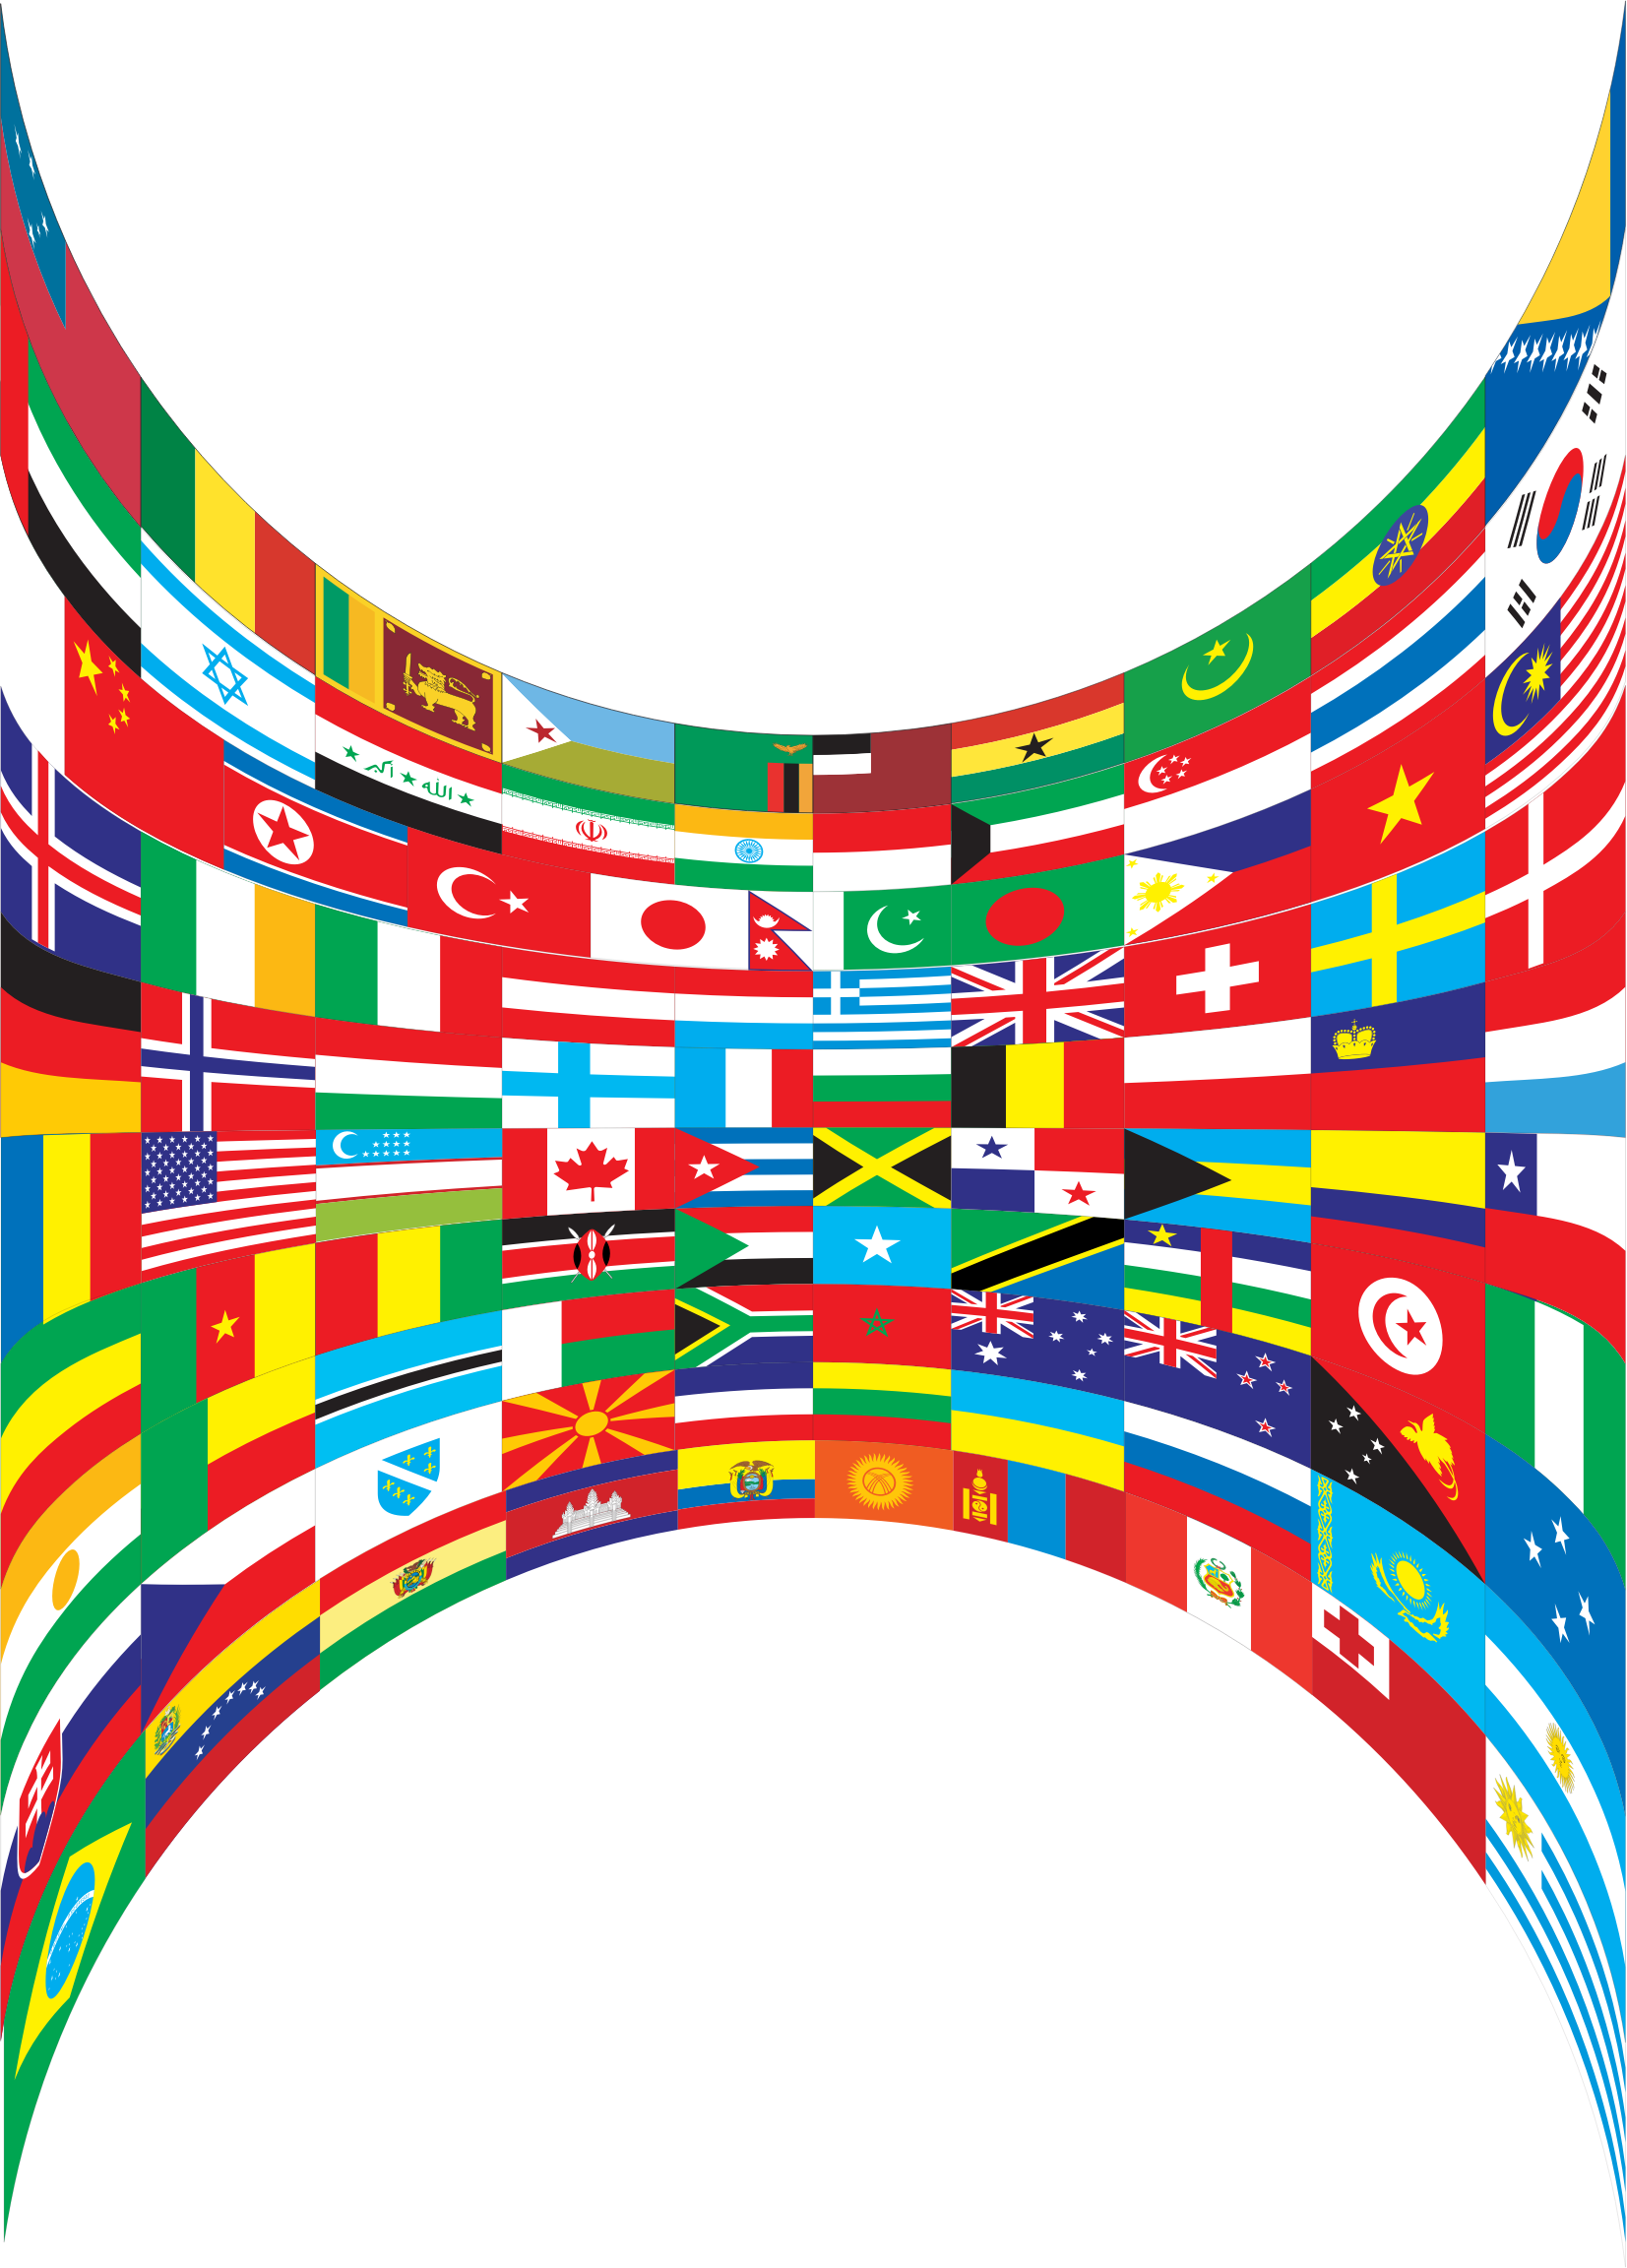 World Flags Perspective by GDJ